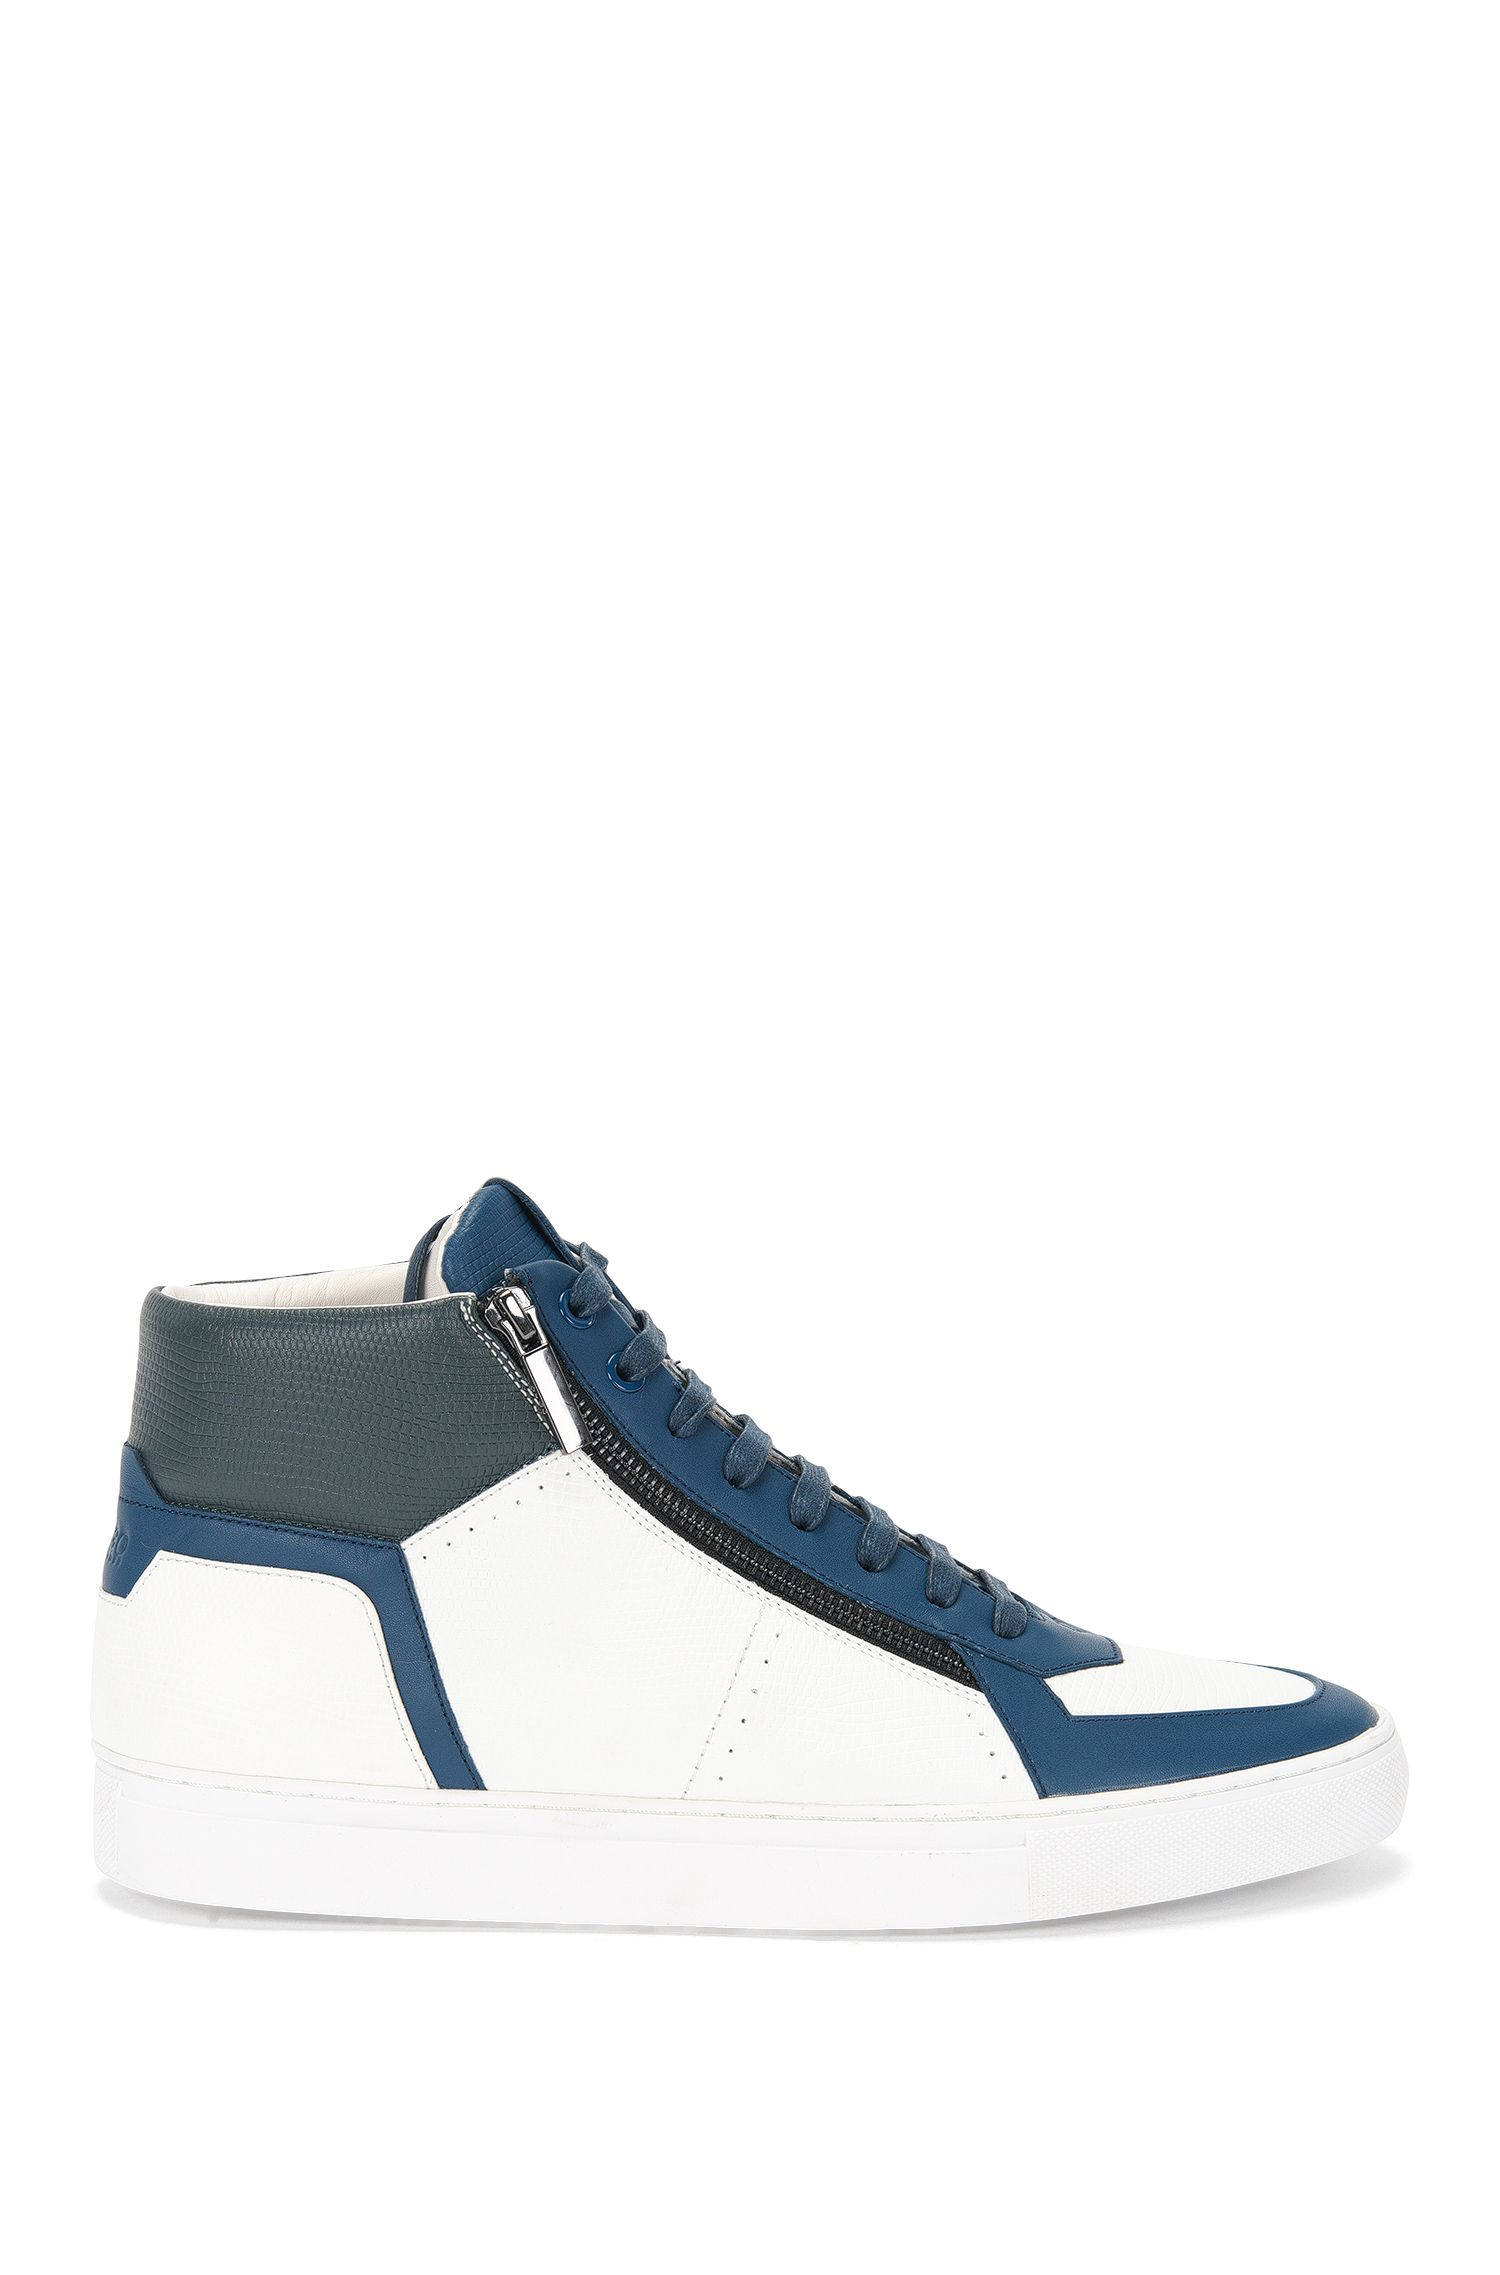 'Futurism Hito Exo'   Leather High-Top Sneakers